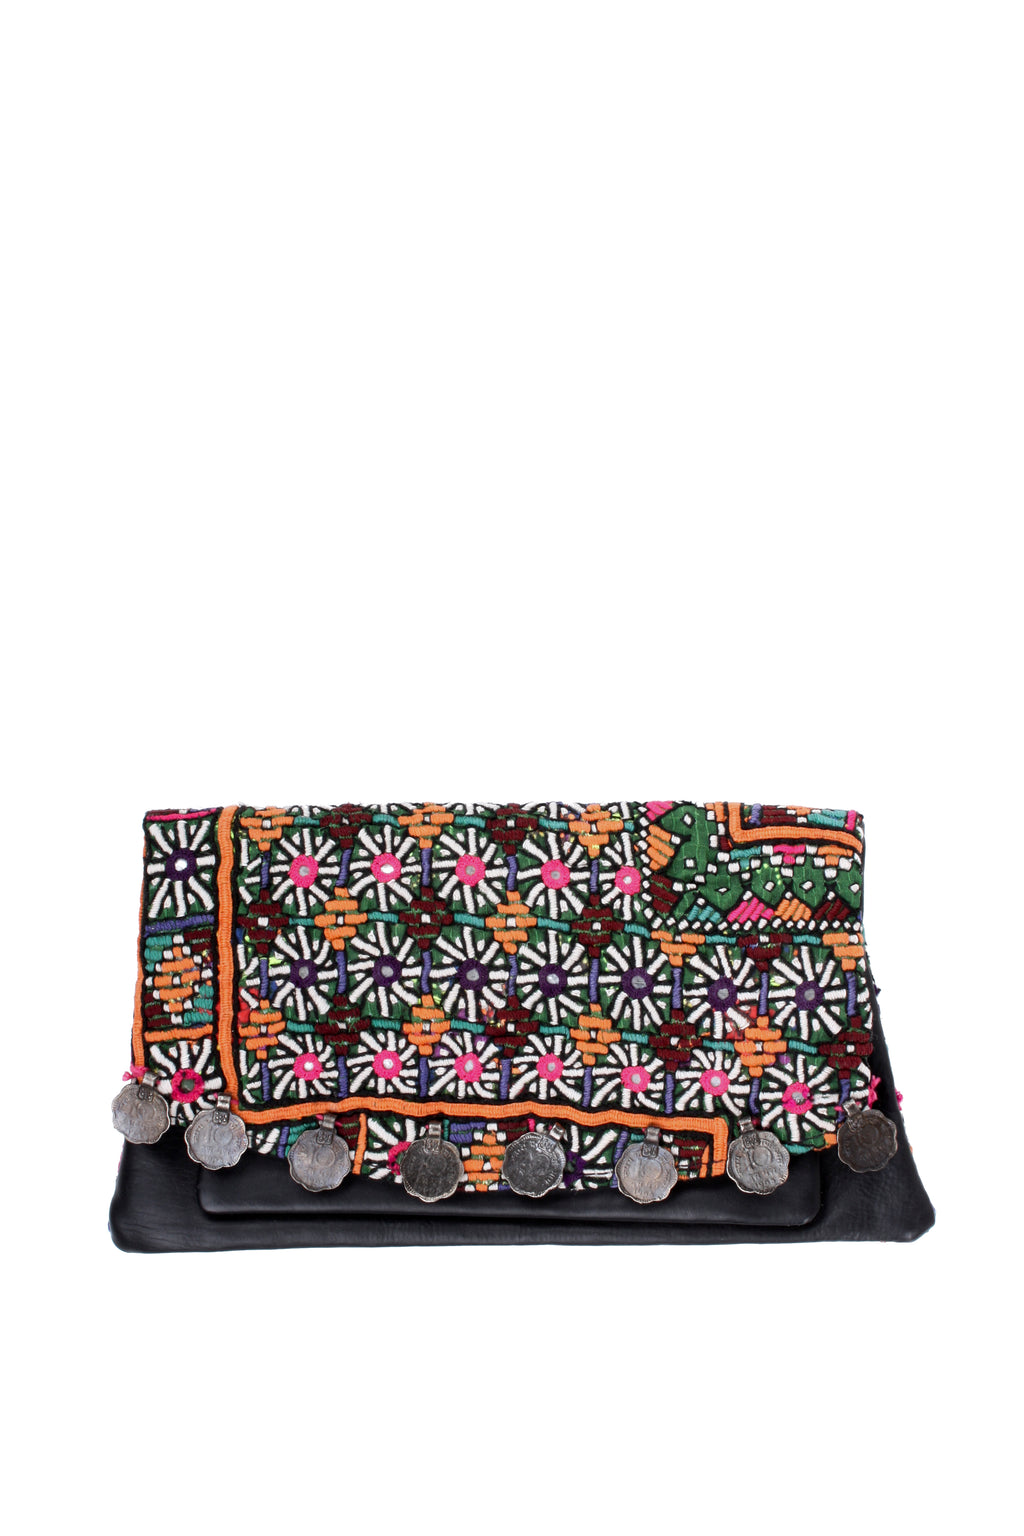 Banjara and Leather Clutch Purse